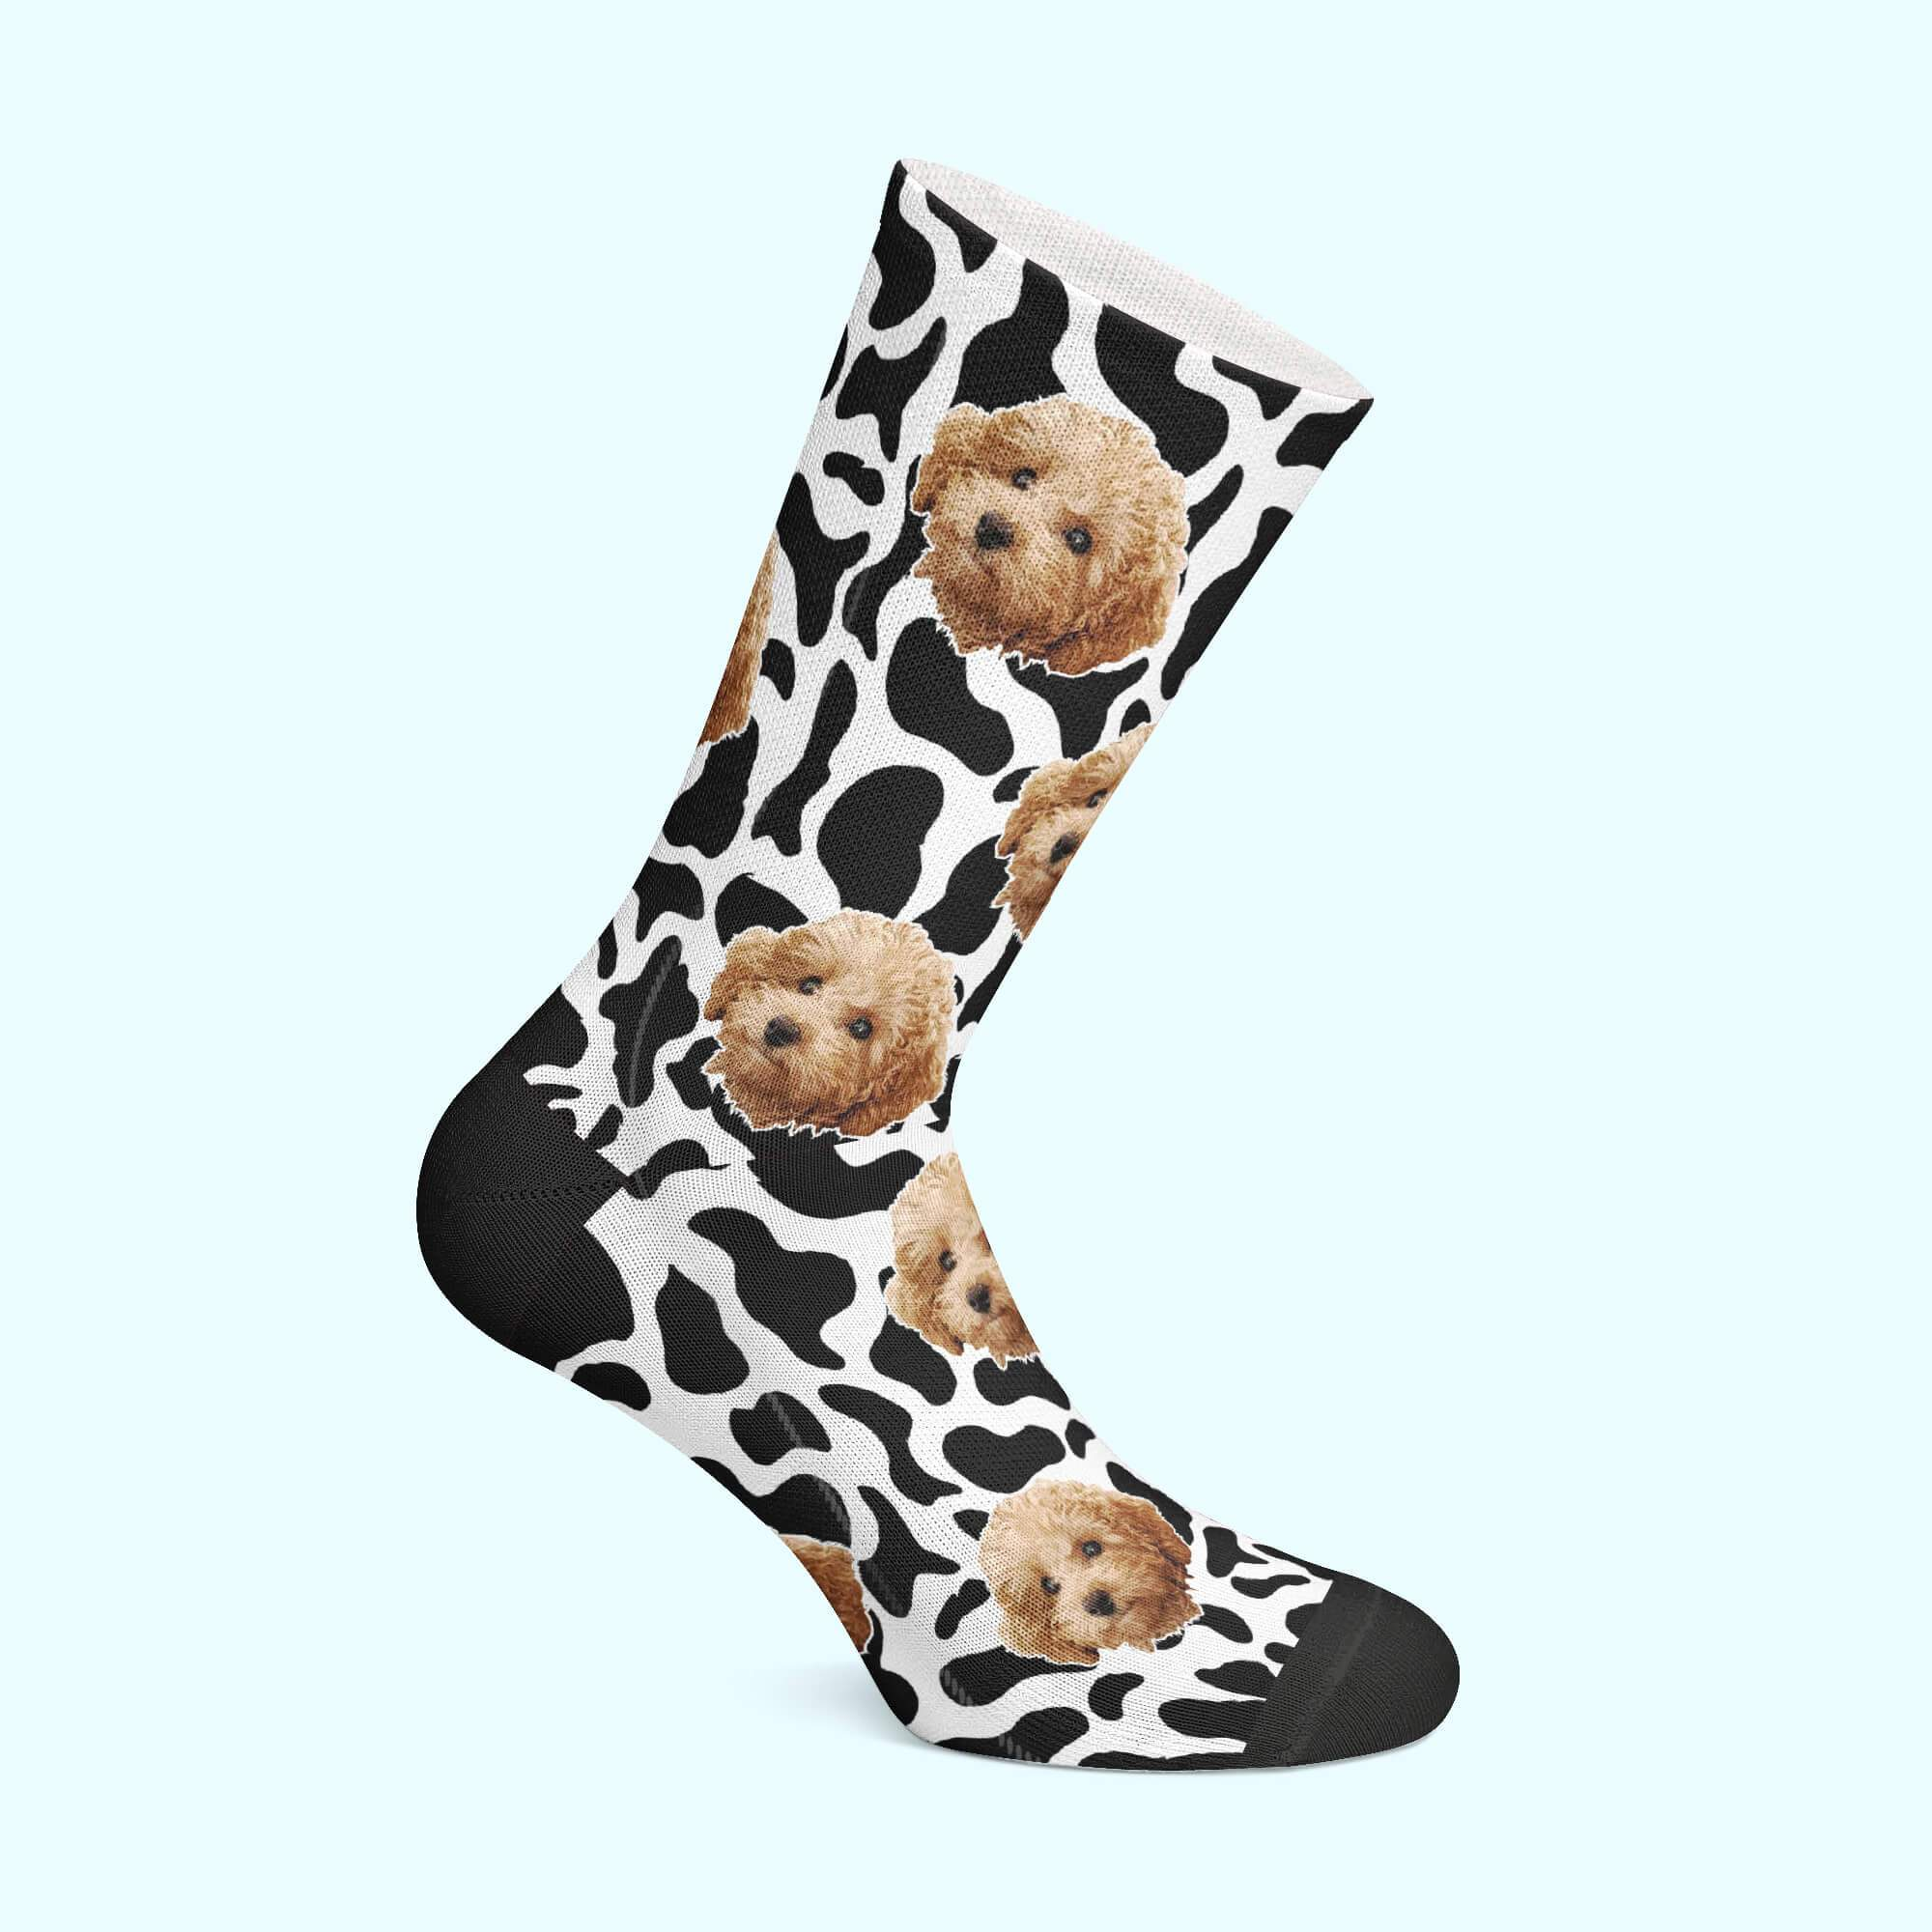 Customizable - Cow Pet Socks